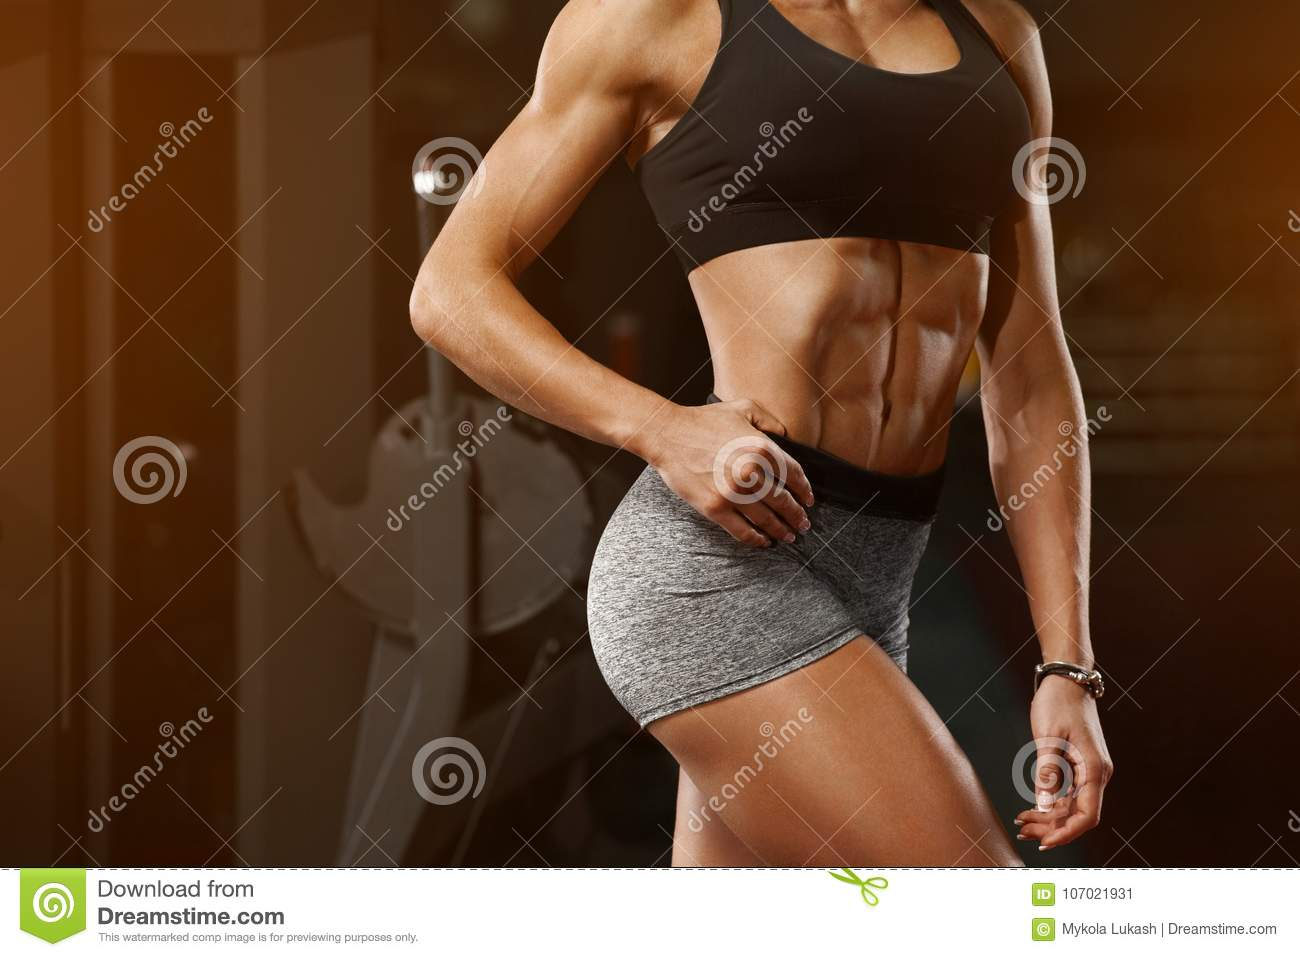 Fitness woman showing abs and flat belly in gym. Athletic girl, shaped abdominal, slim waist